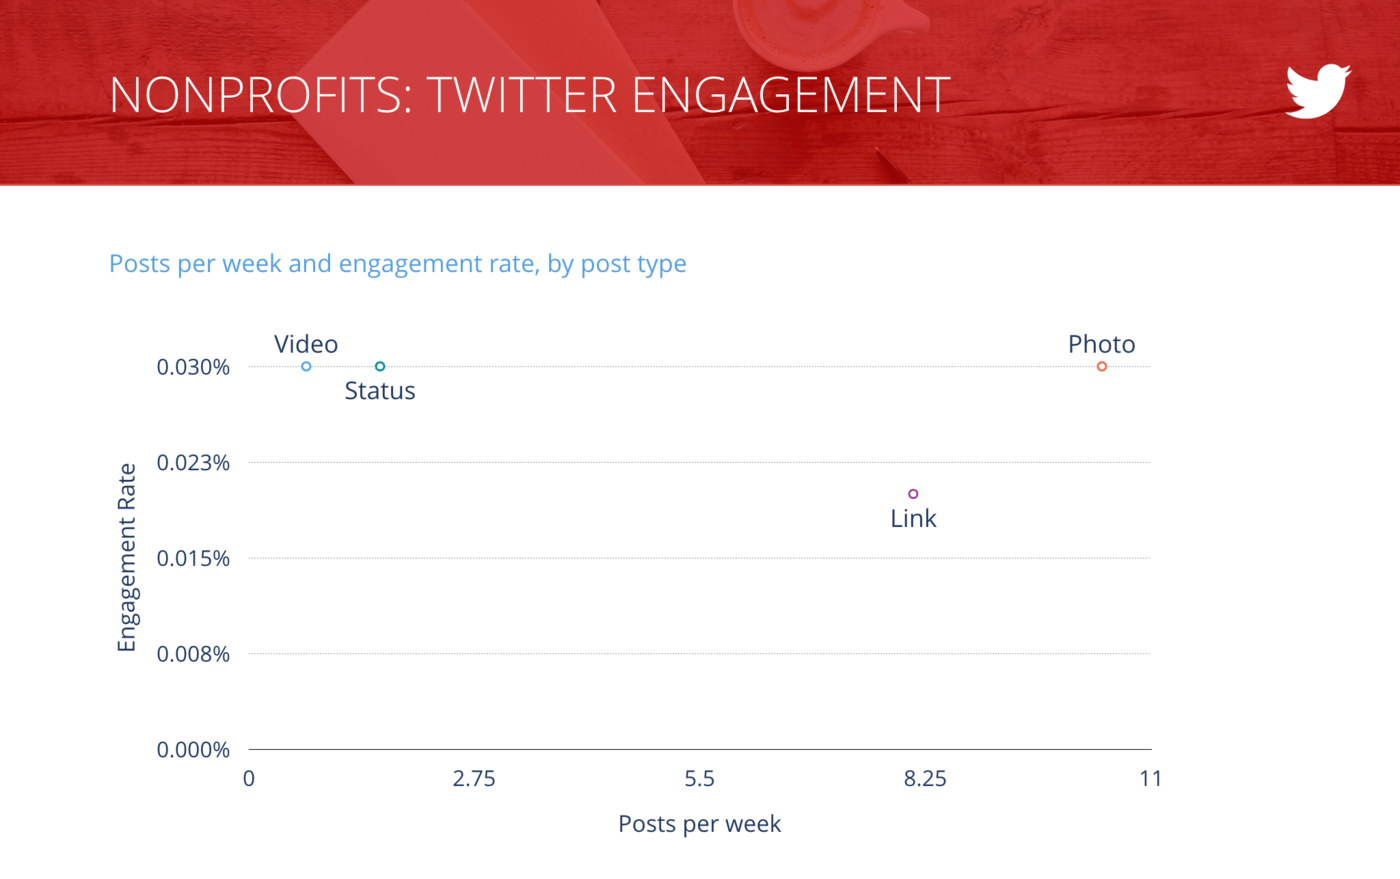 slide of Tweets per Week vs. Engagement Rate per Tweet, Nonprofit Organizations